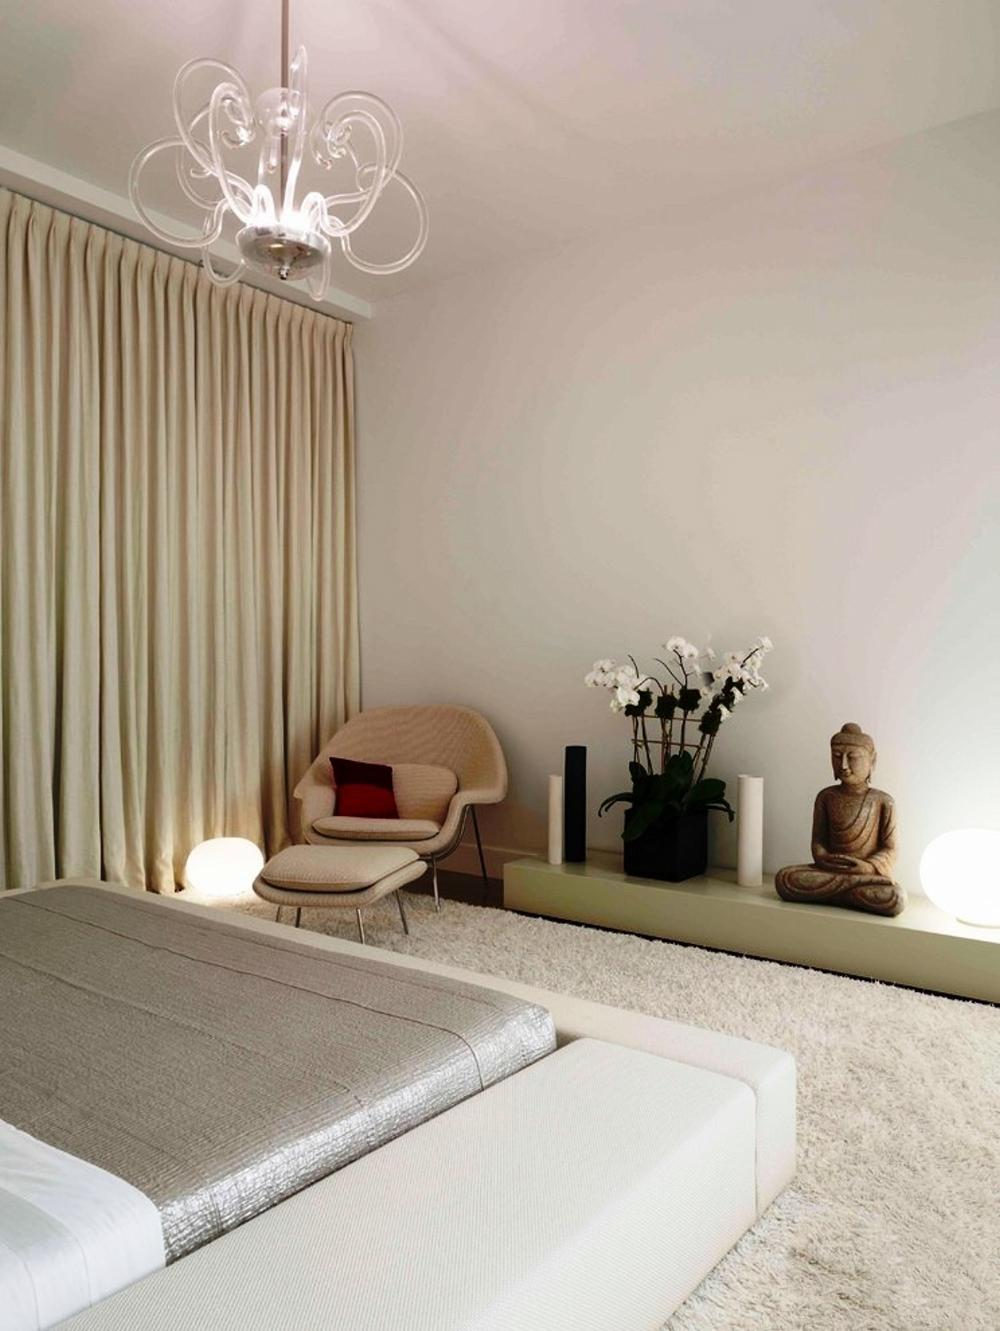 Calm And Serenity With Zen Spaces How To Build A House